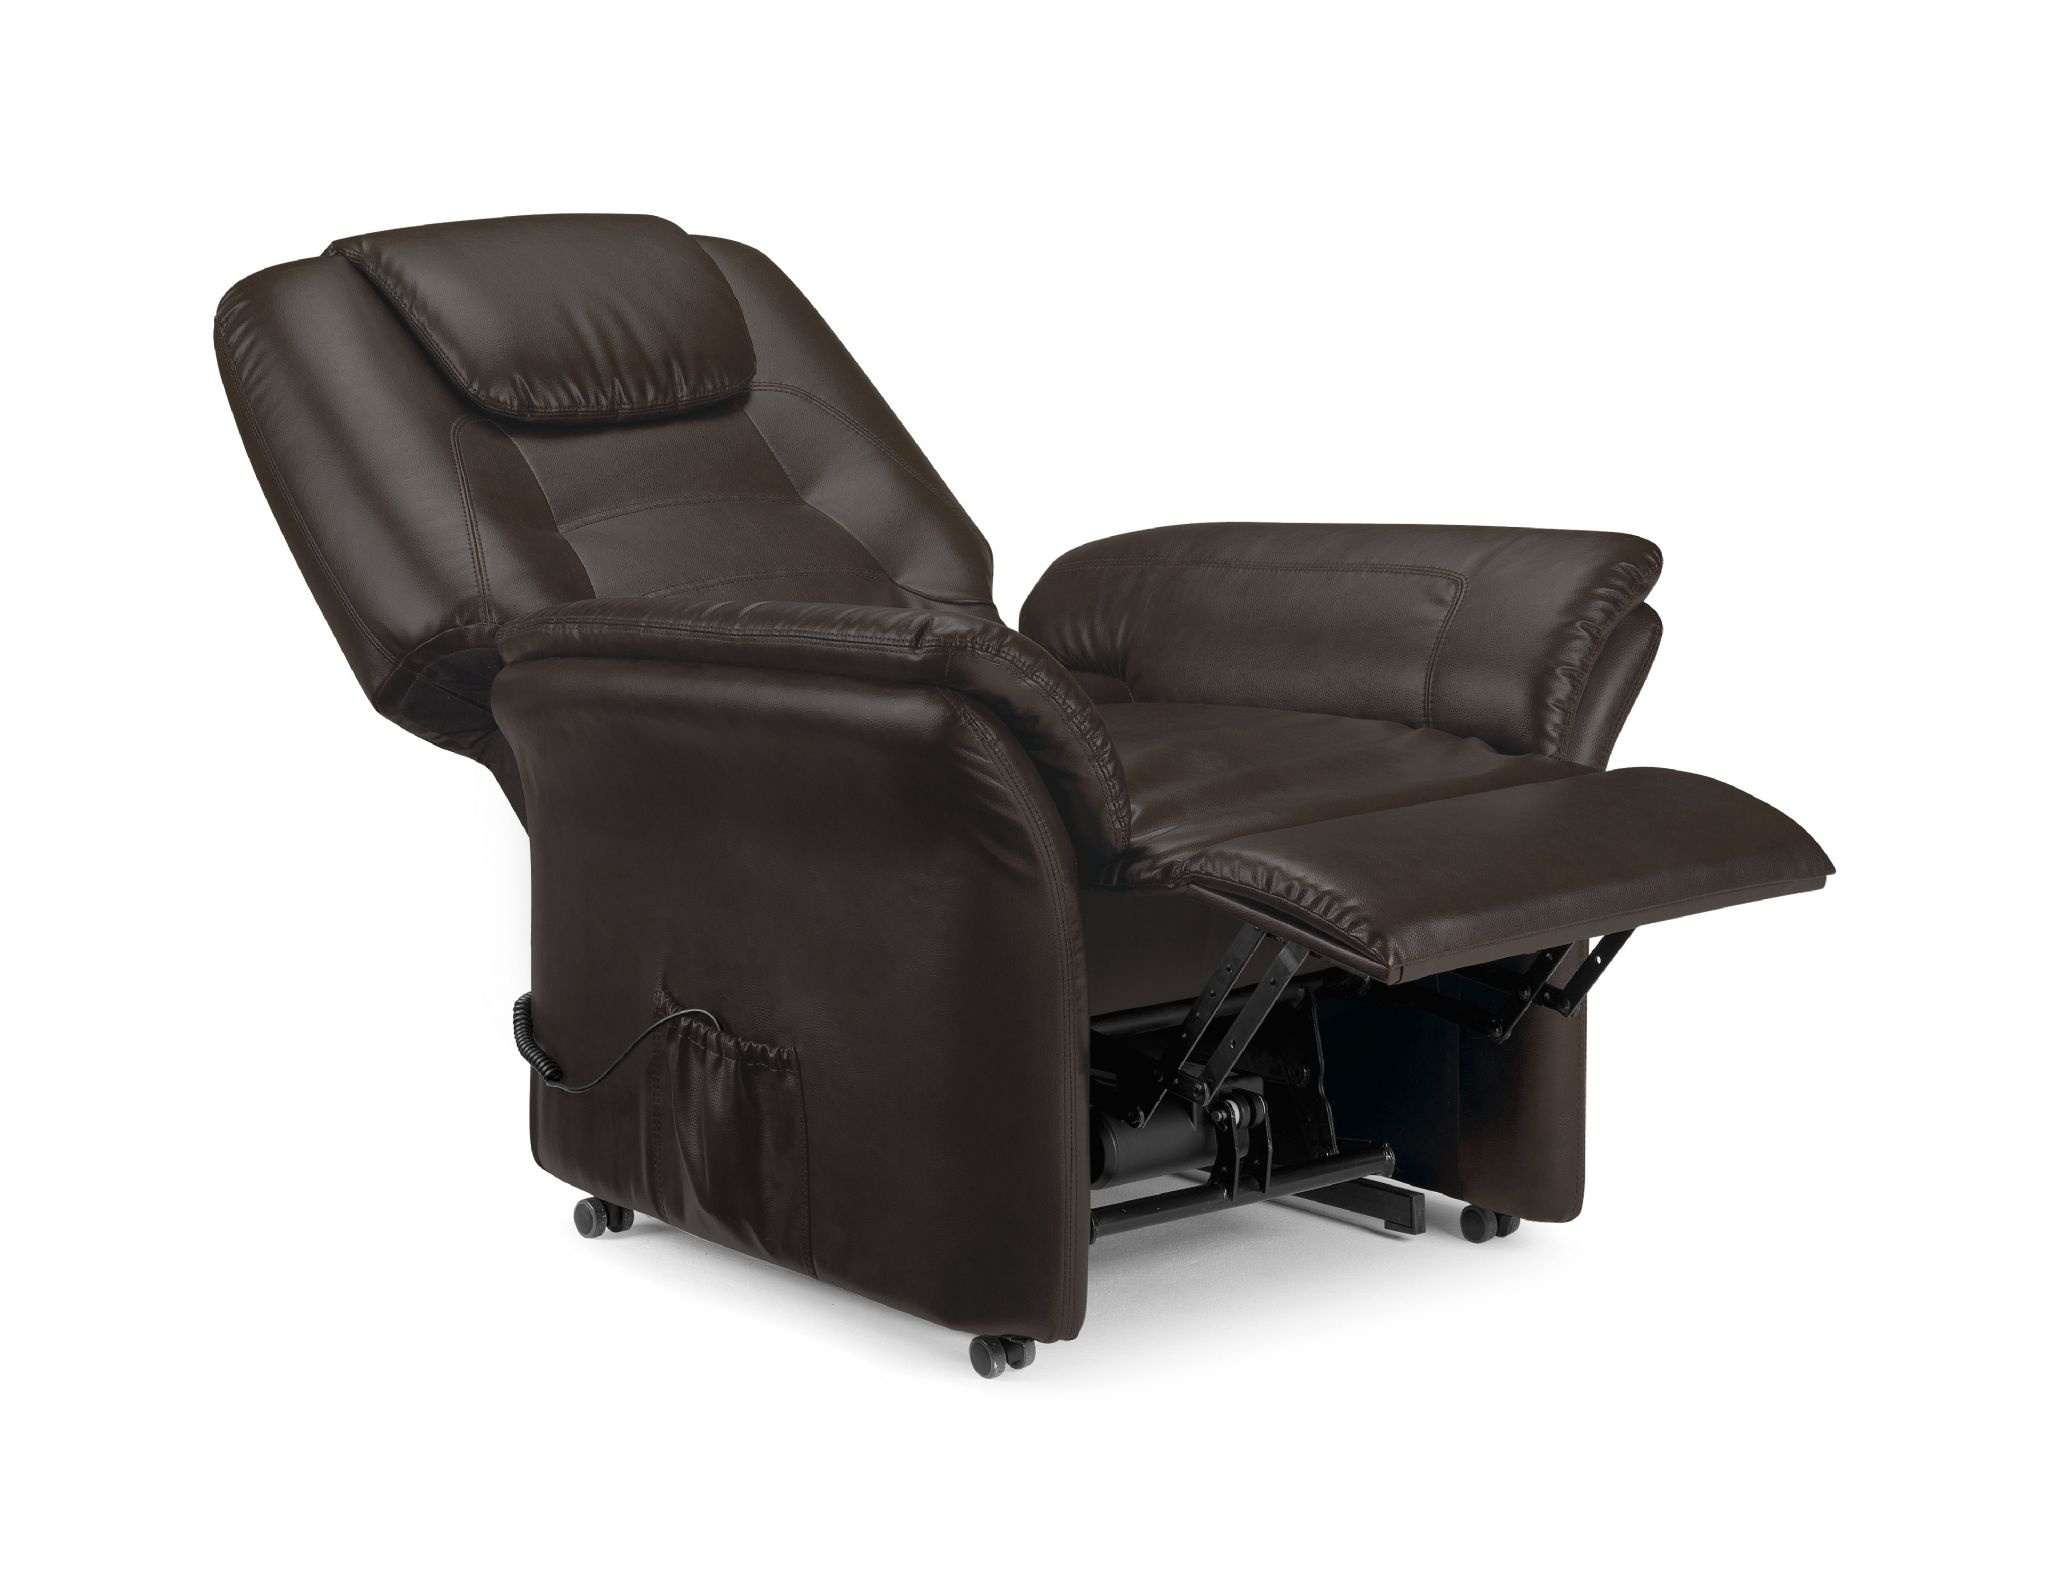 Montesilvano Brown Faux Leather Rise Amp Recline Chair Jb460